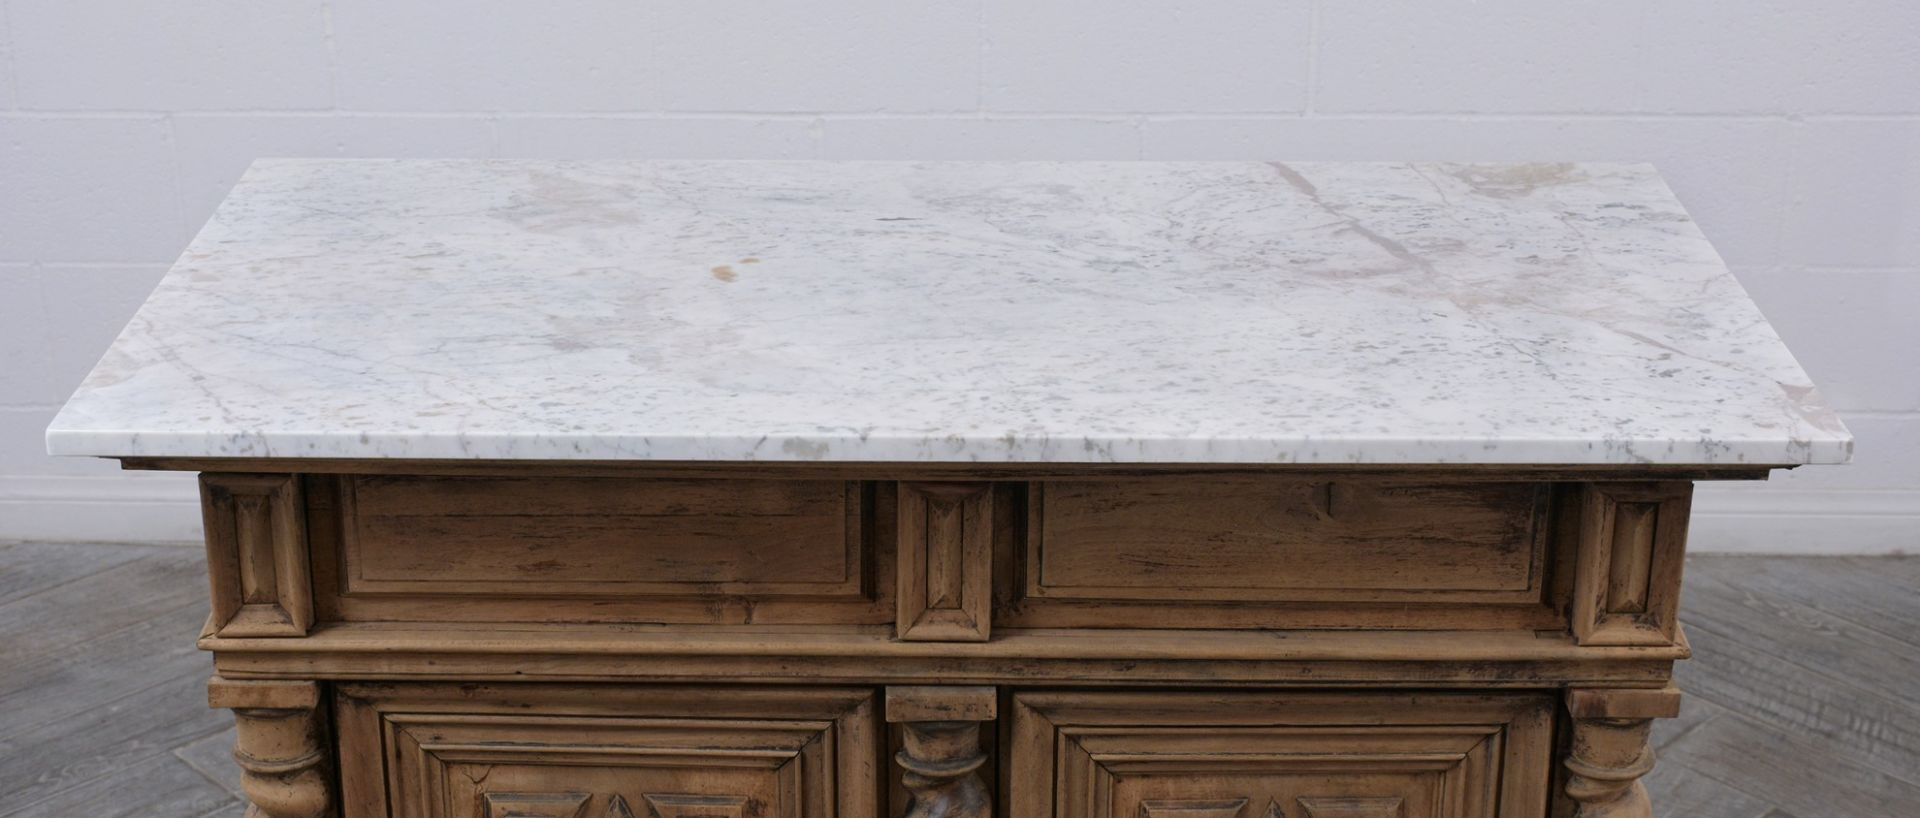 1830's French Renaissance-style Bleached Buffet